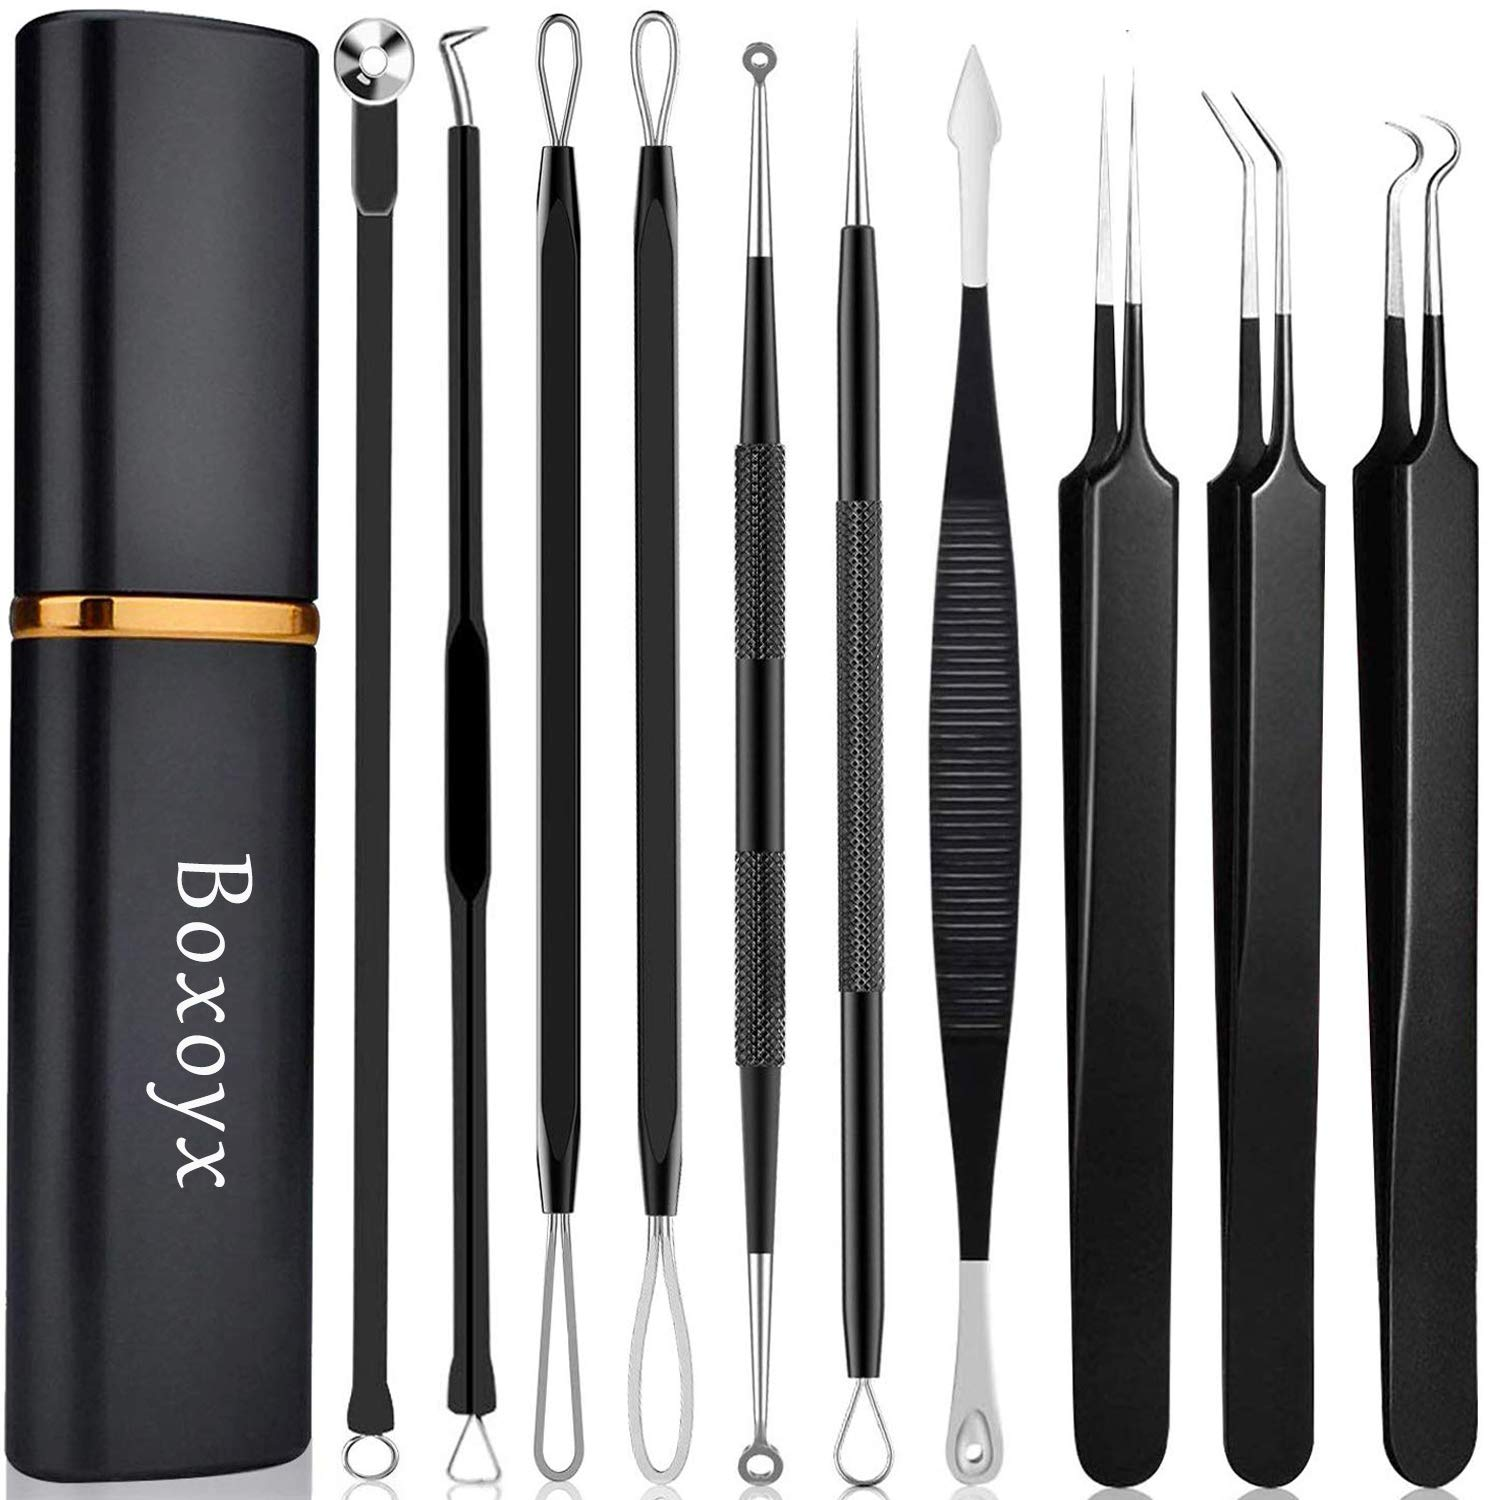 Pimple Popper Tool Kit - Boxoyx 10 Pcs Blackhead Remover Comedone Extractor Kit with Metal Case for Quick and Easy Removal of Pimples, Blackheads, Zit Removing, Forehead,Facial and Nose(Black)